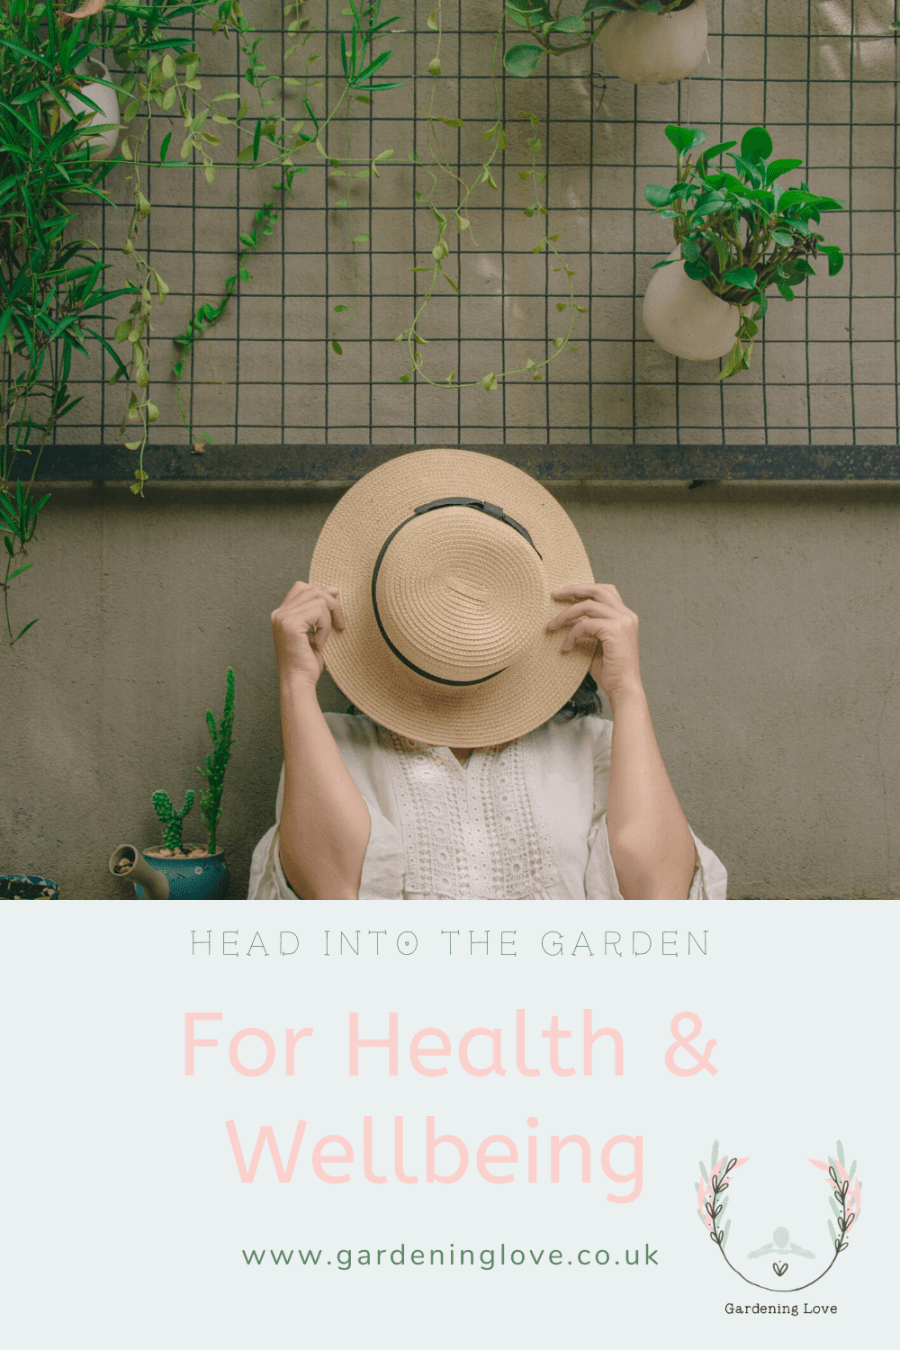 use your garden for its amazing health and wellbeing benefits. #gardening #health #wellbeing